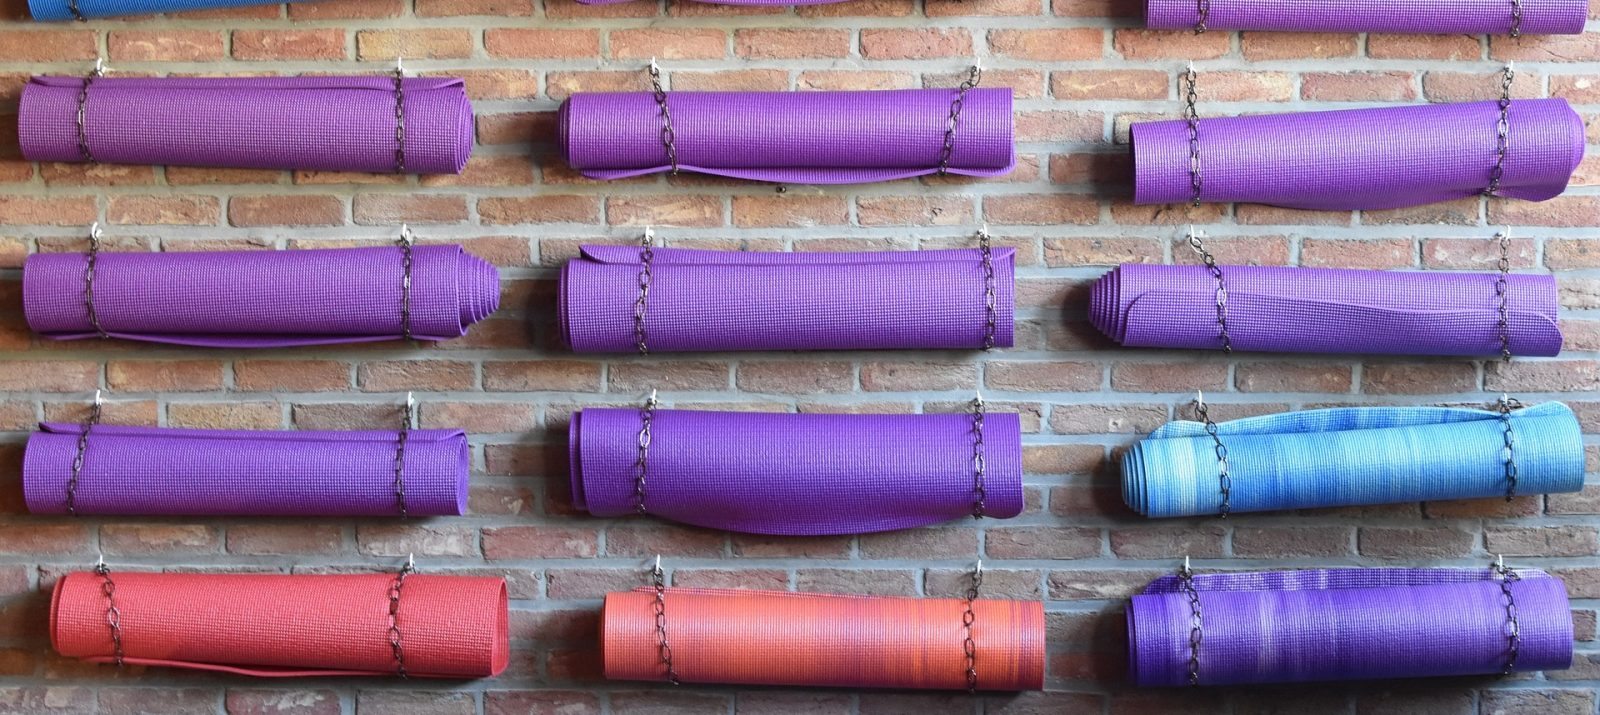 yoga mat storage on a brick wall